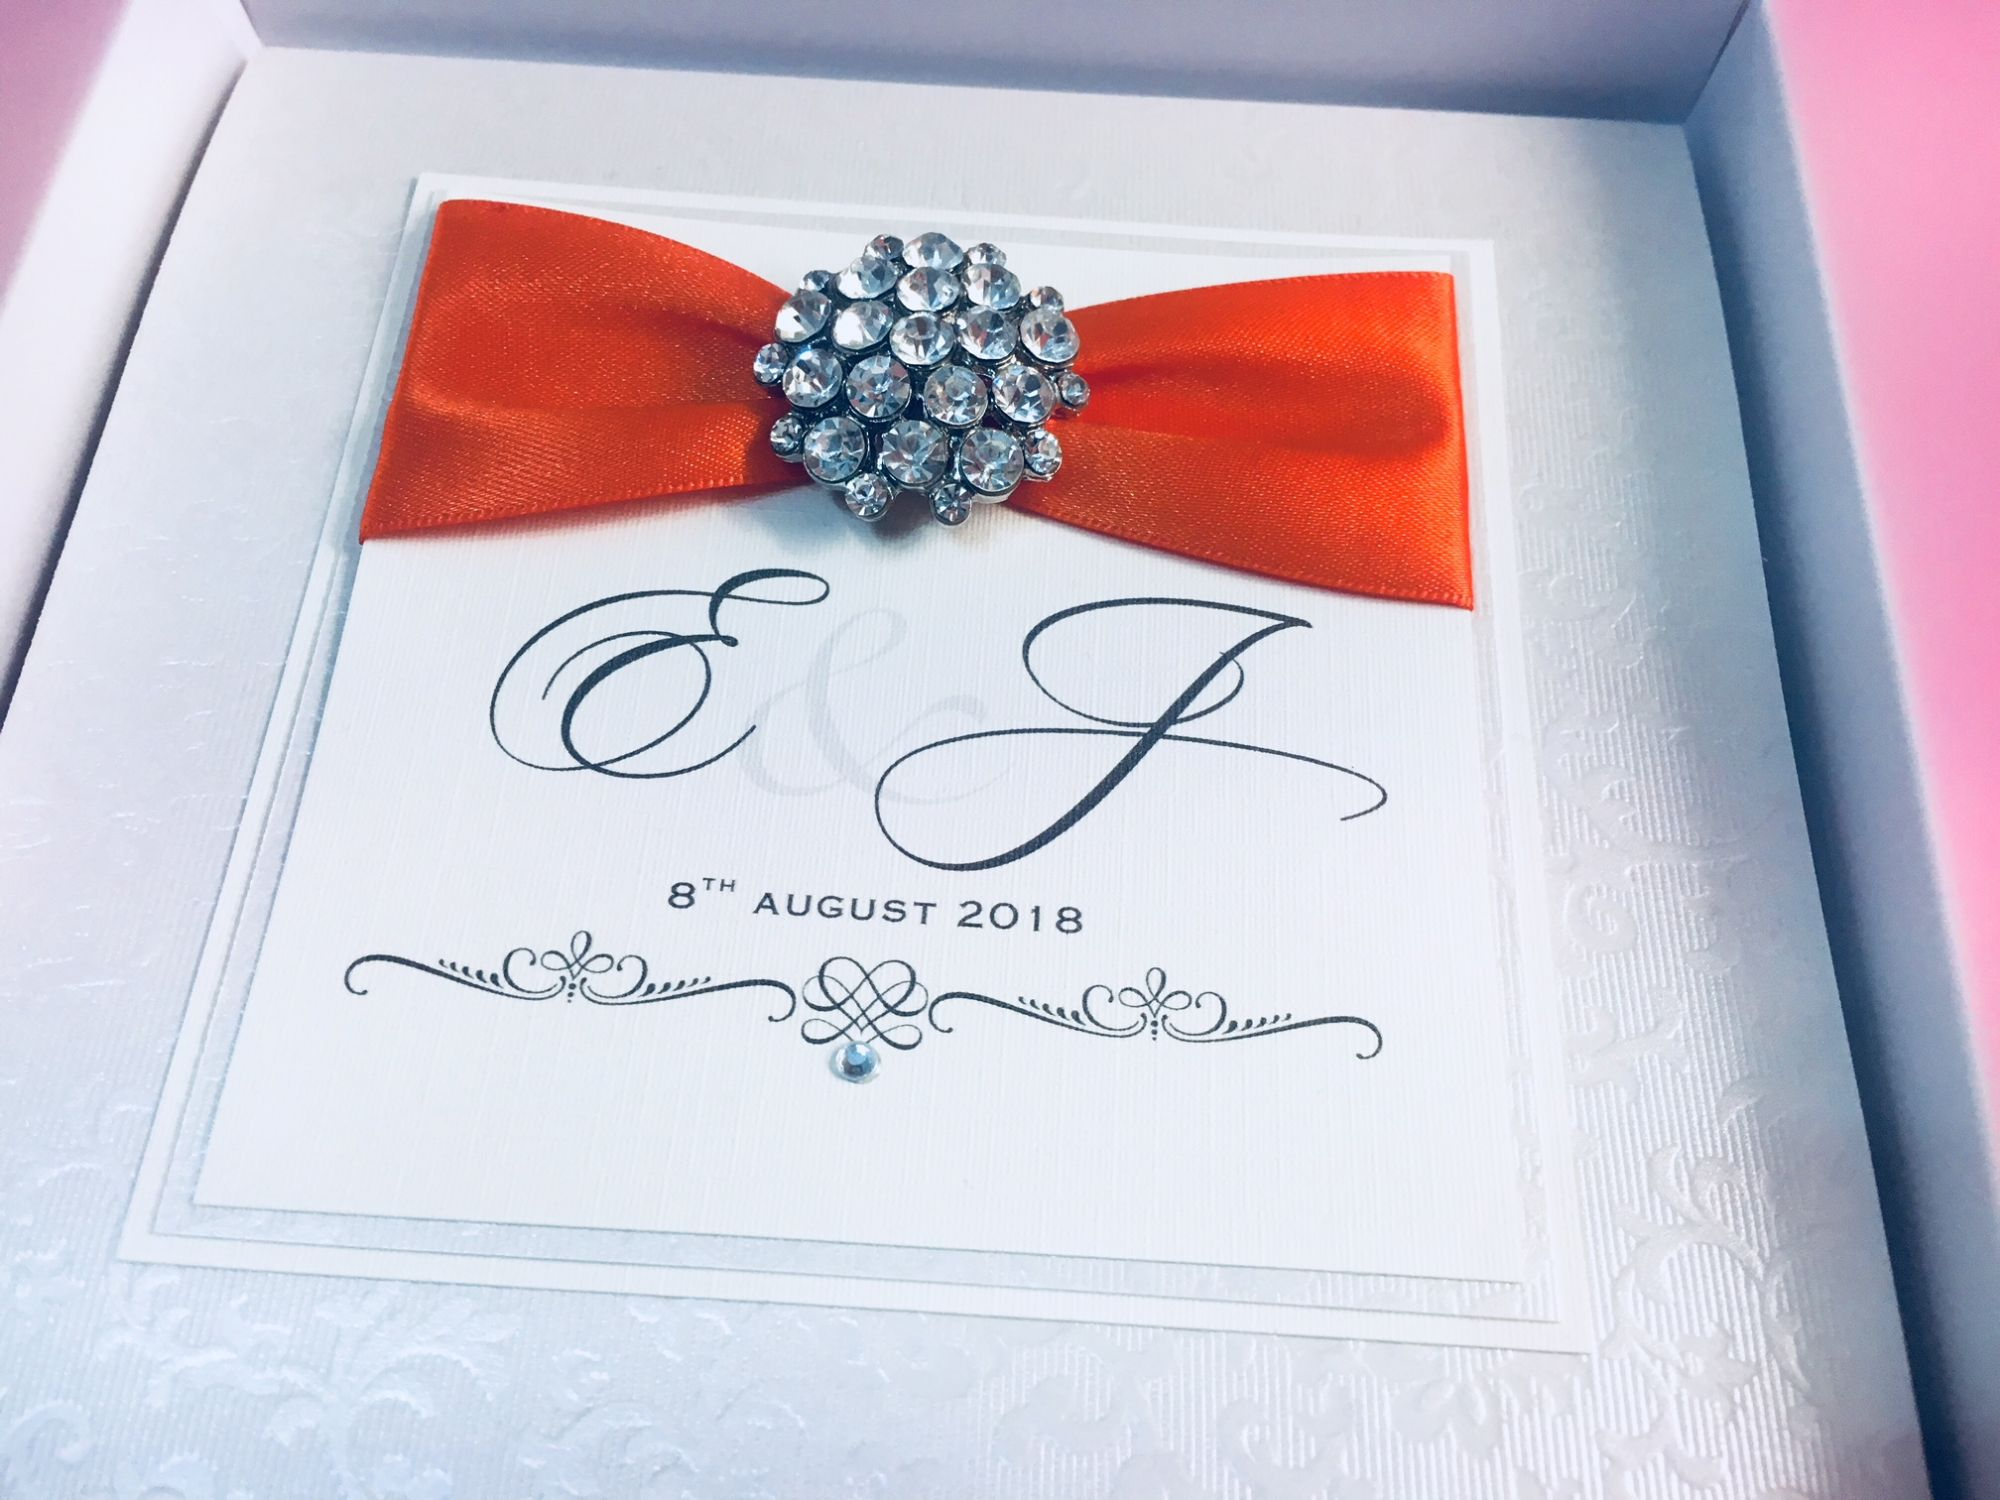 Monogram wedding invitations with beautiful brooch